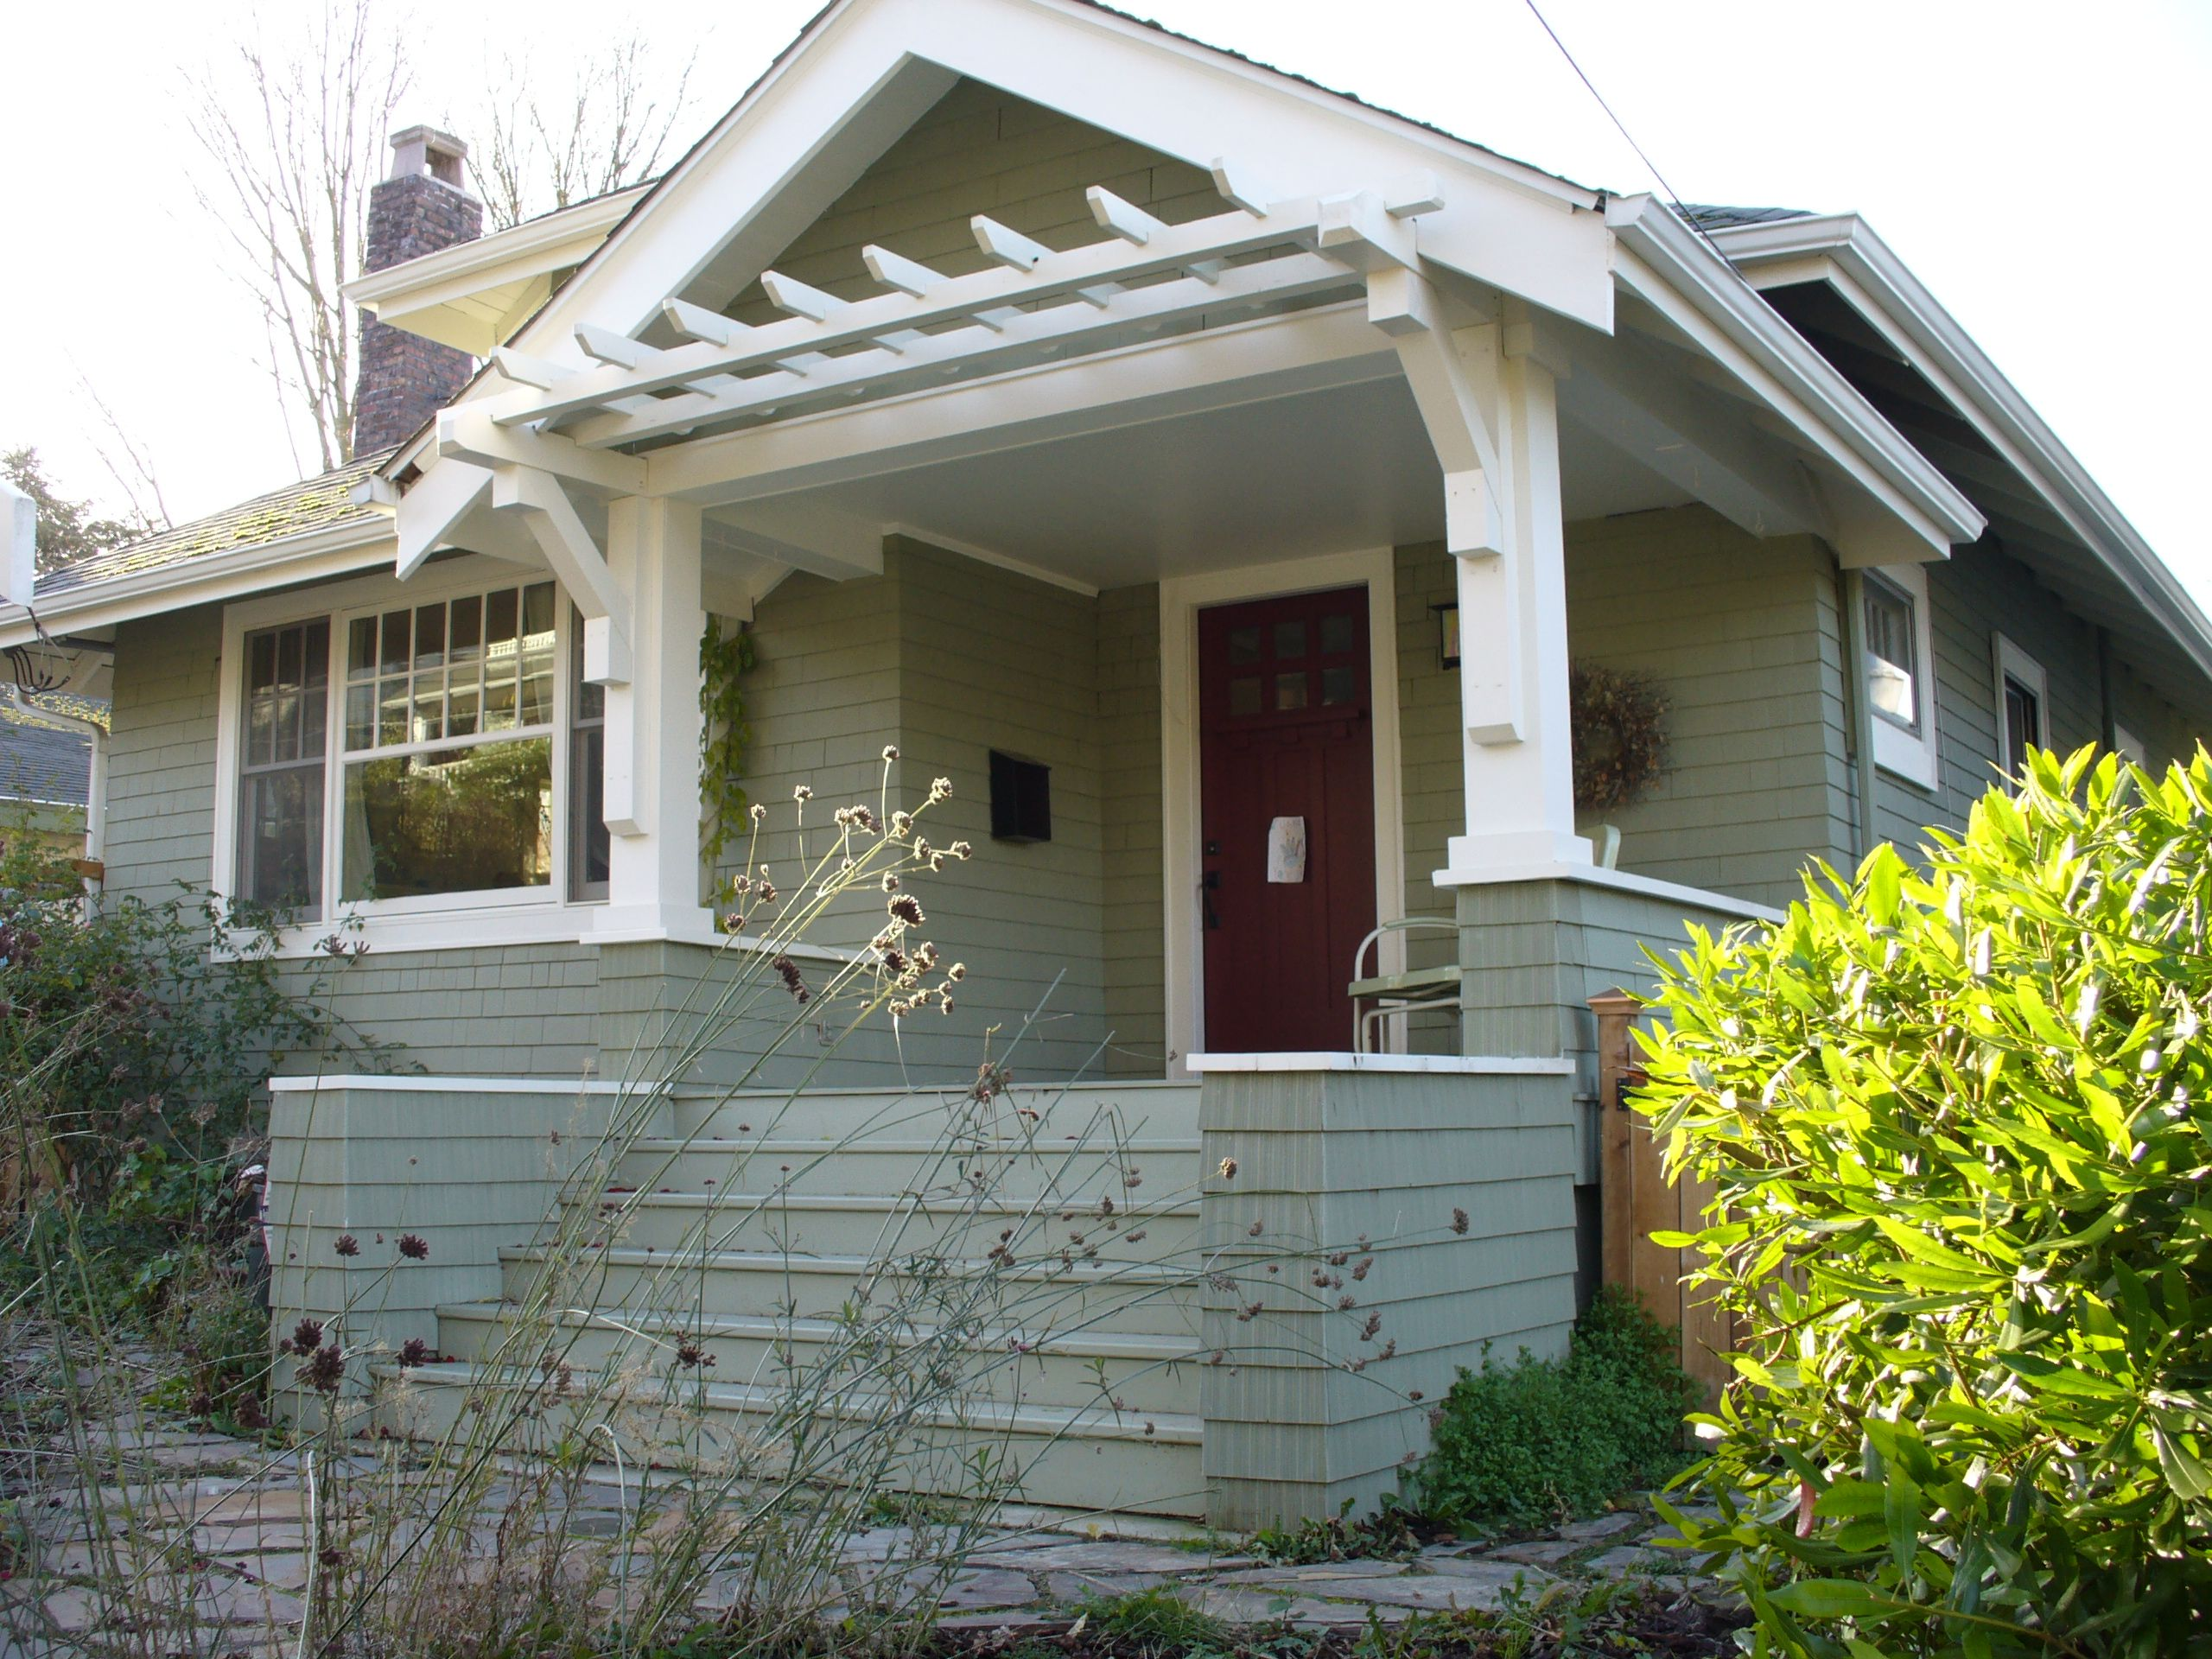 House projects side entrance ideas on pinterest for Craftsman style front porch